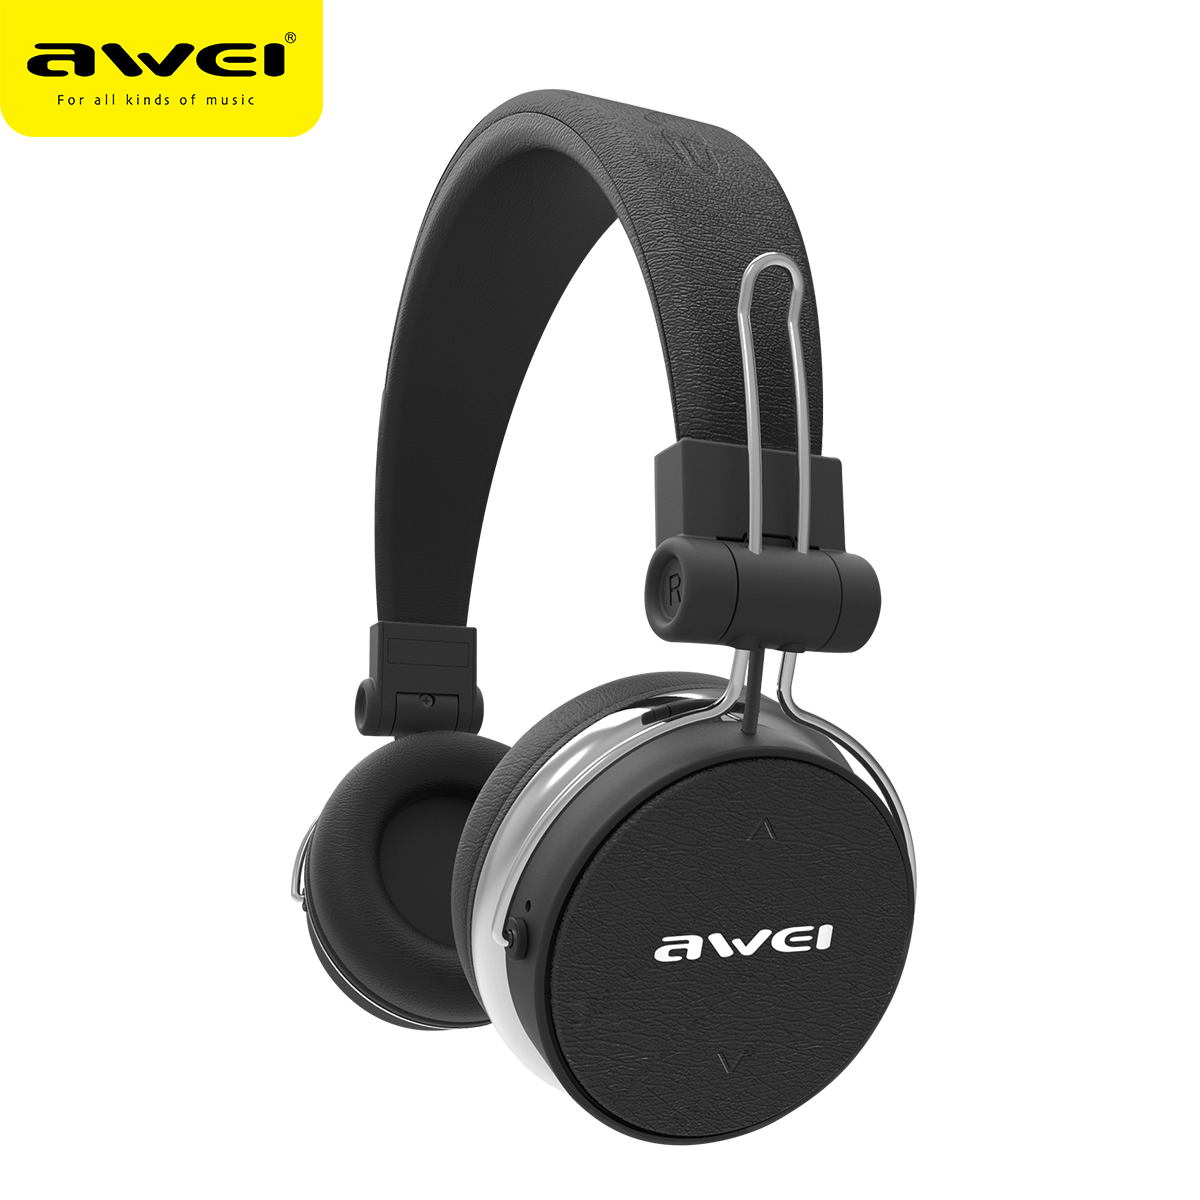 AWEI A700BL Bluetooth Headphone With Microphone Wireless Earphone Cordless Headset Casque Earpiece For Cellphone Stereo Kulakl k 8 5 12 inch portable lcd handwriting board with pen electronic writing pad drawing tablet notepad for home office em88